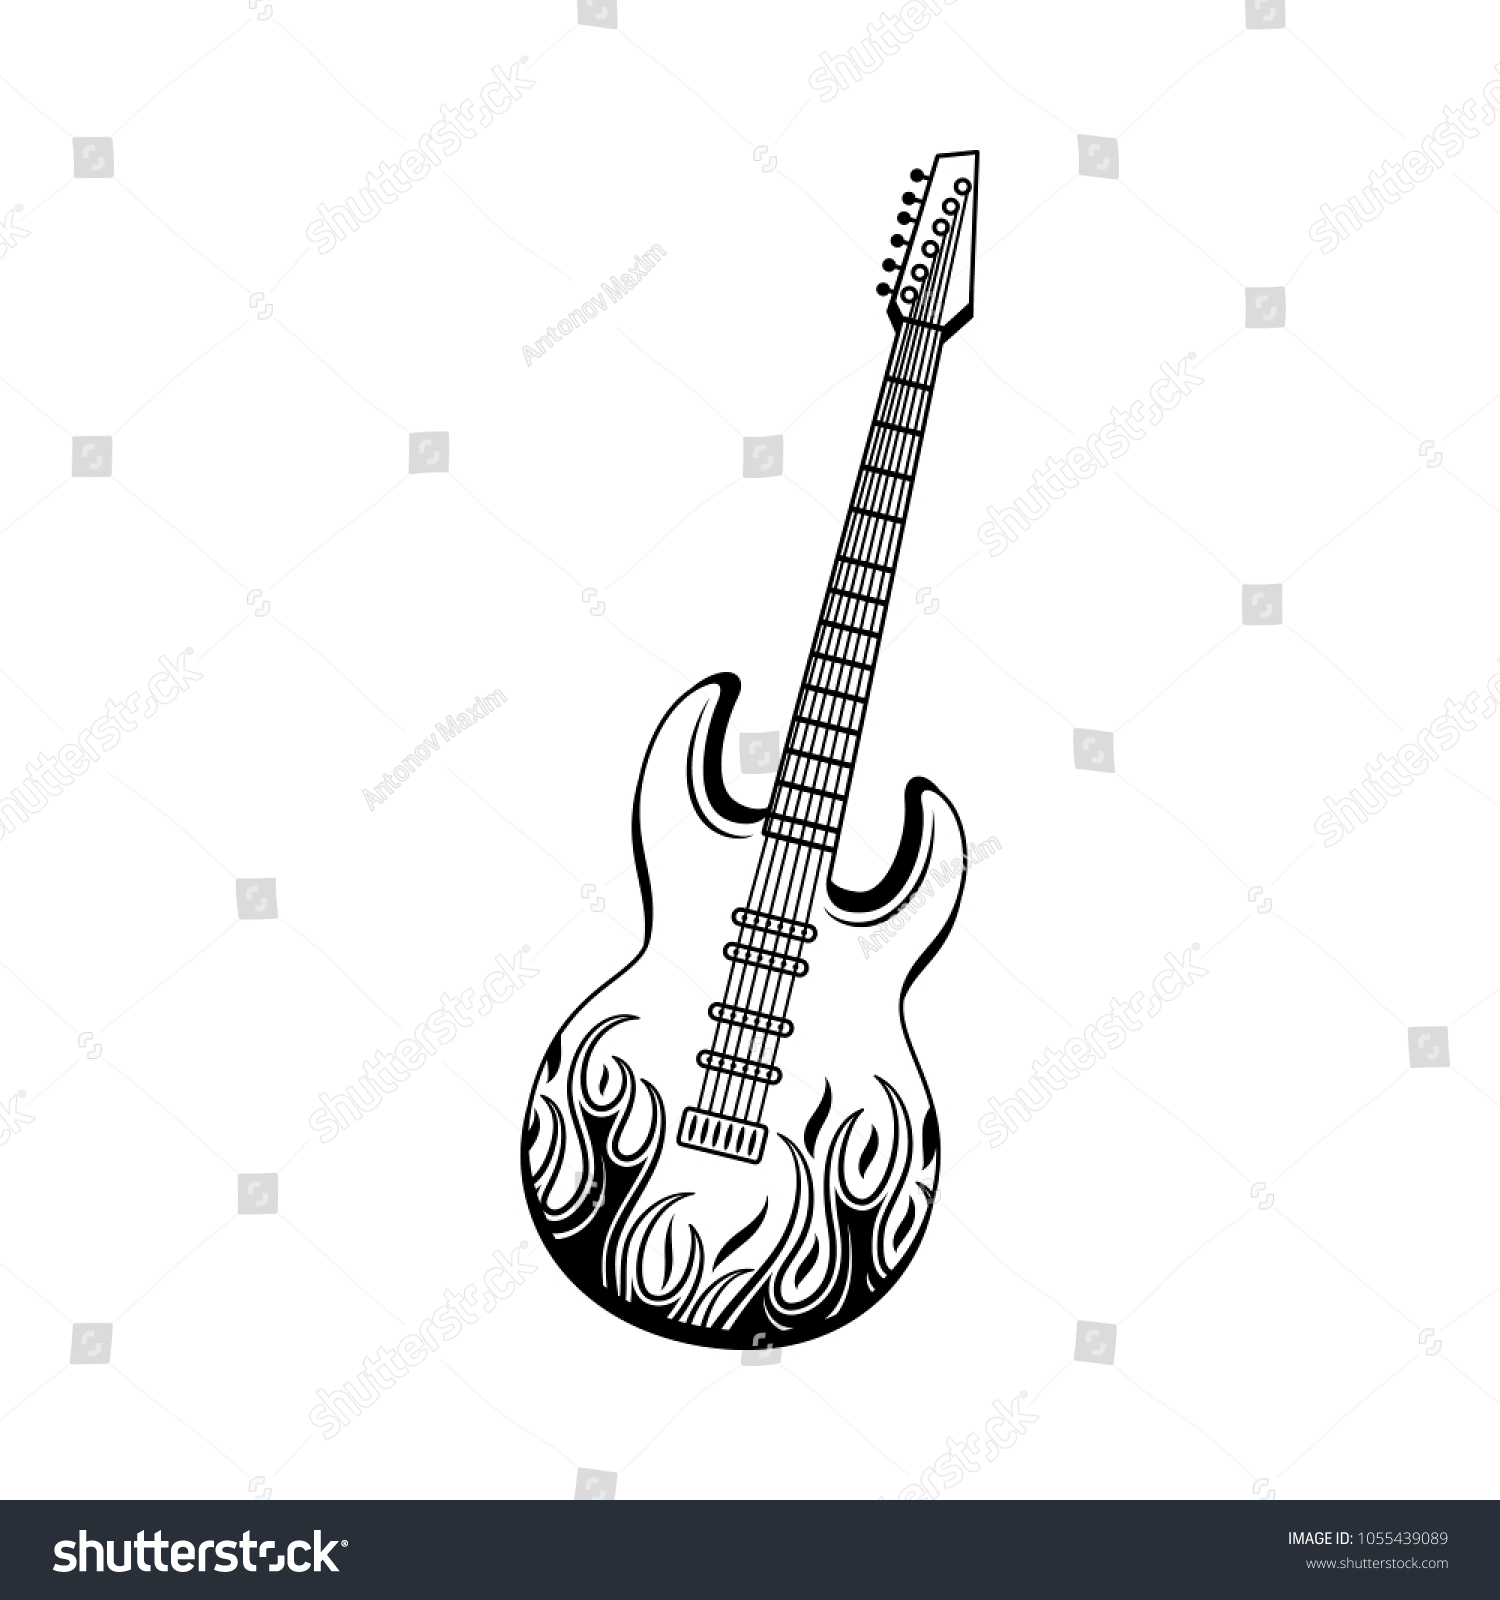 Graphic Electric Guitar Black Jack Cable Stock Vector 1055439089 ...